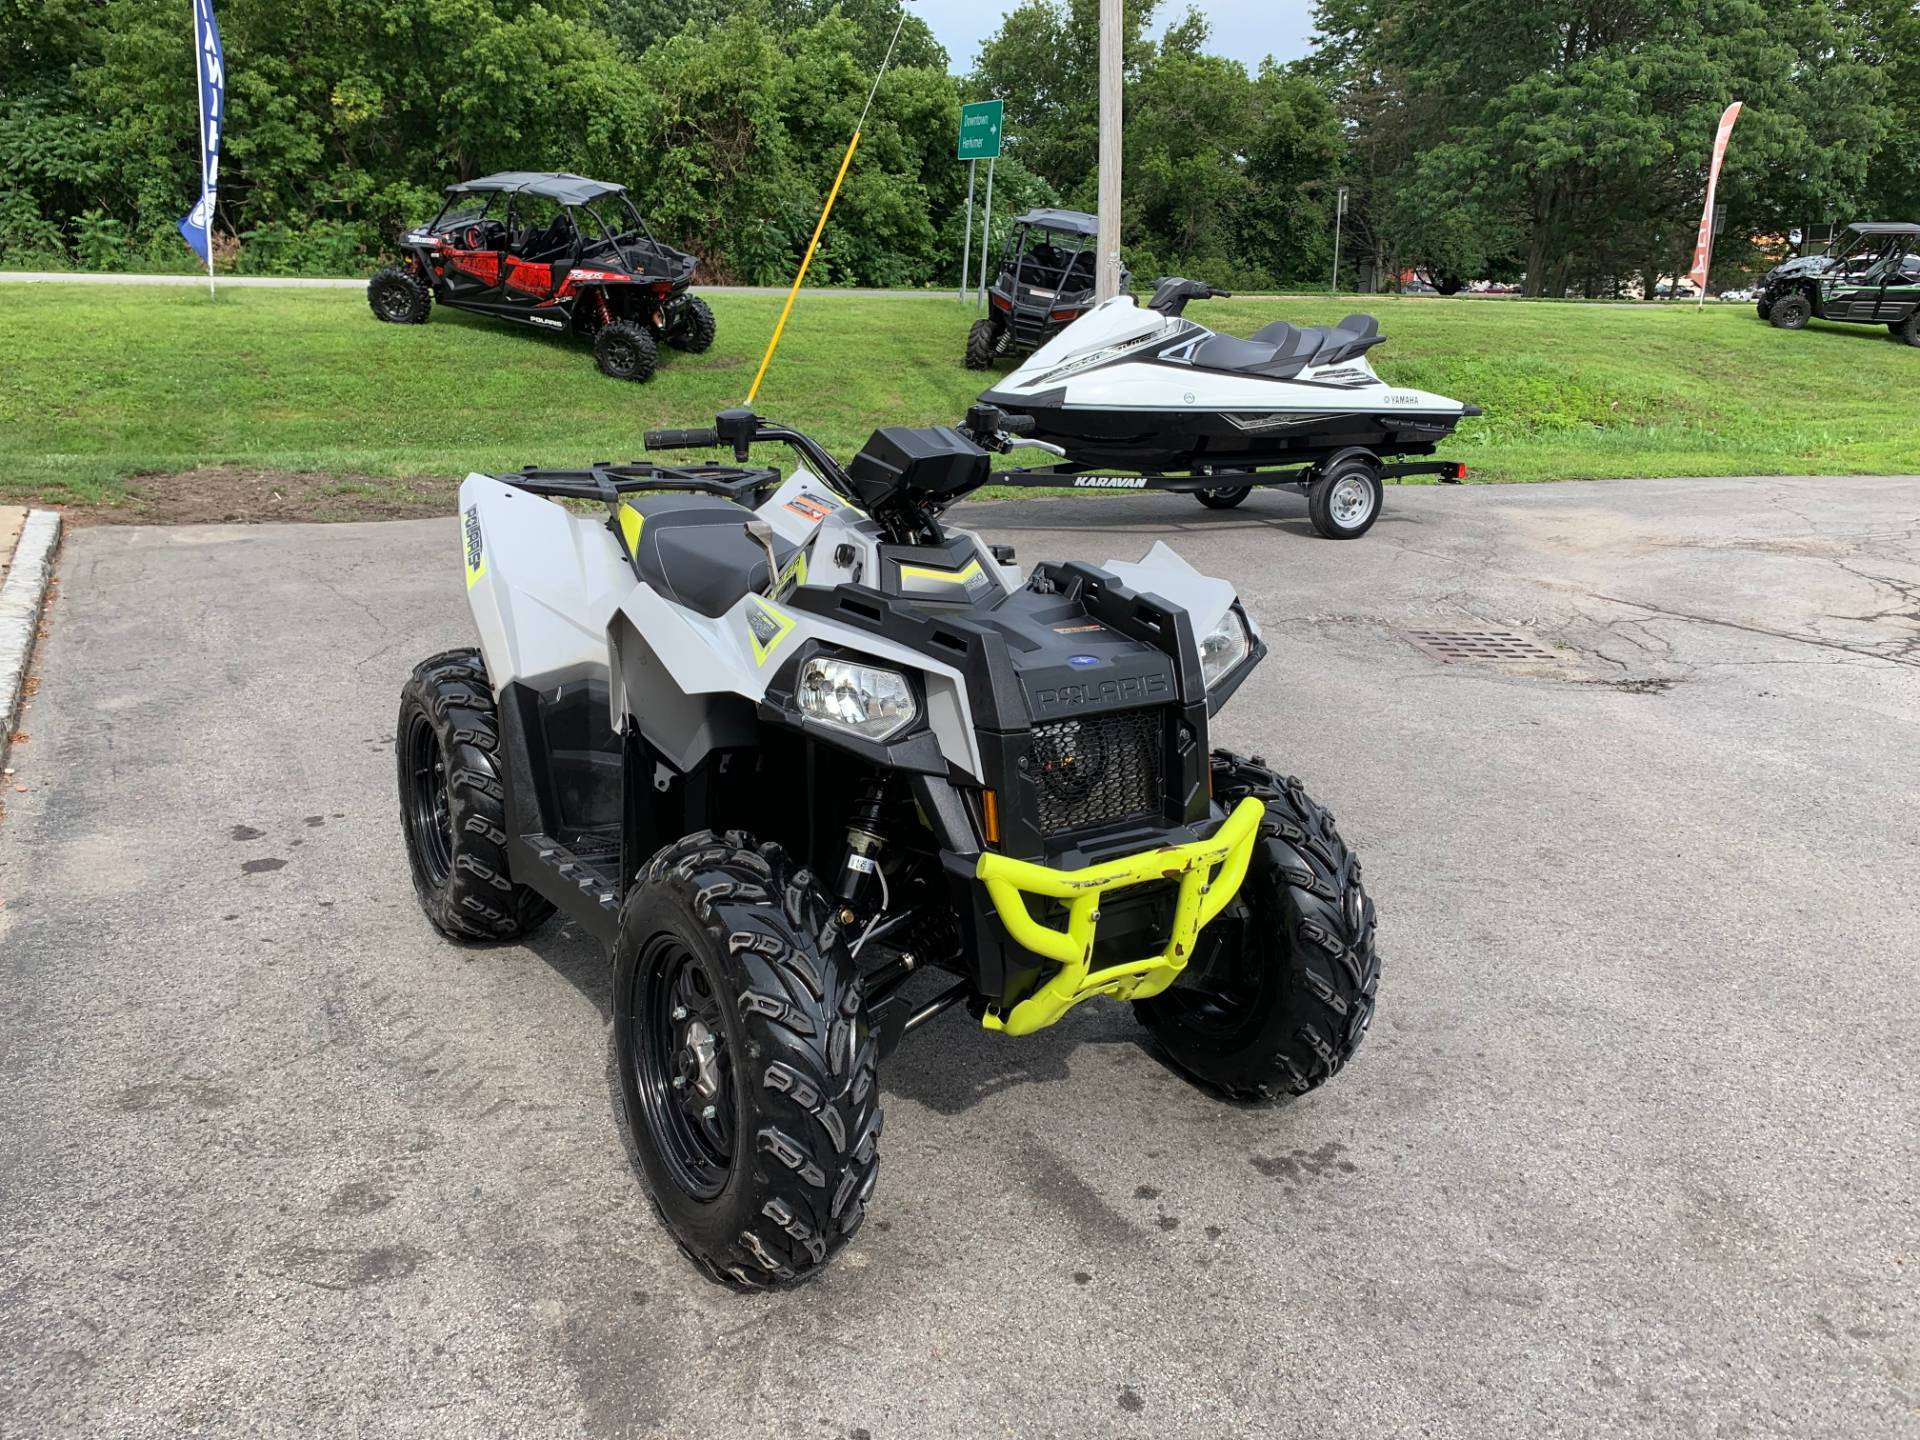 2019 Polaris Scrambler 850 in Herkimer, New York - Photo 5